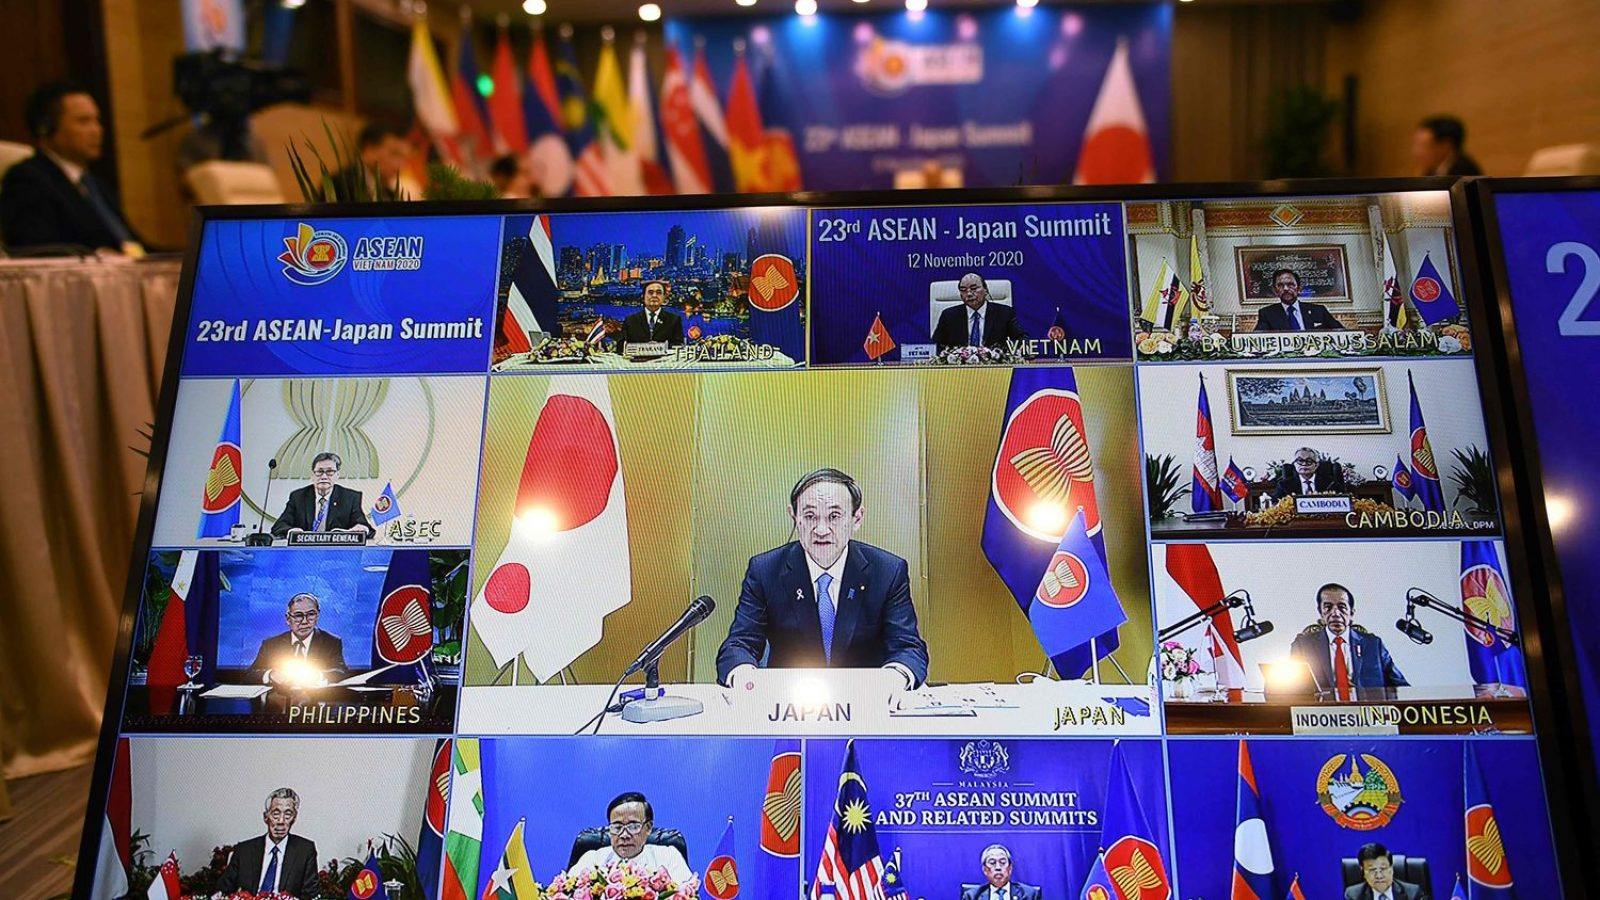 Prime Minister Suga and ASEAN leaders shown on digital monitor.